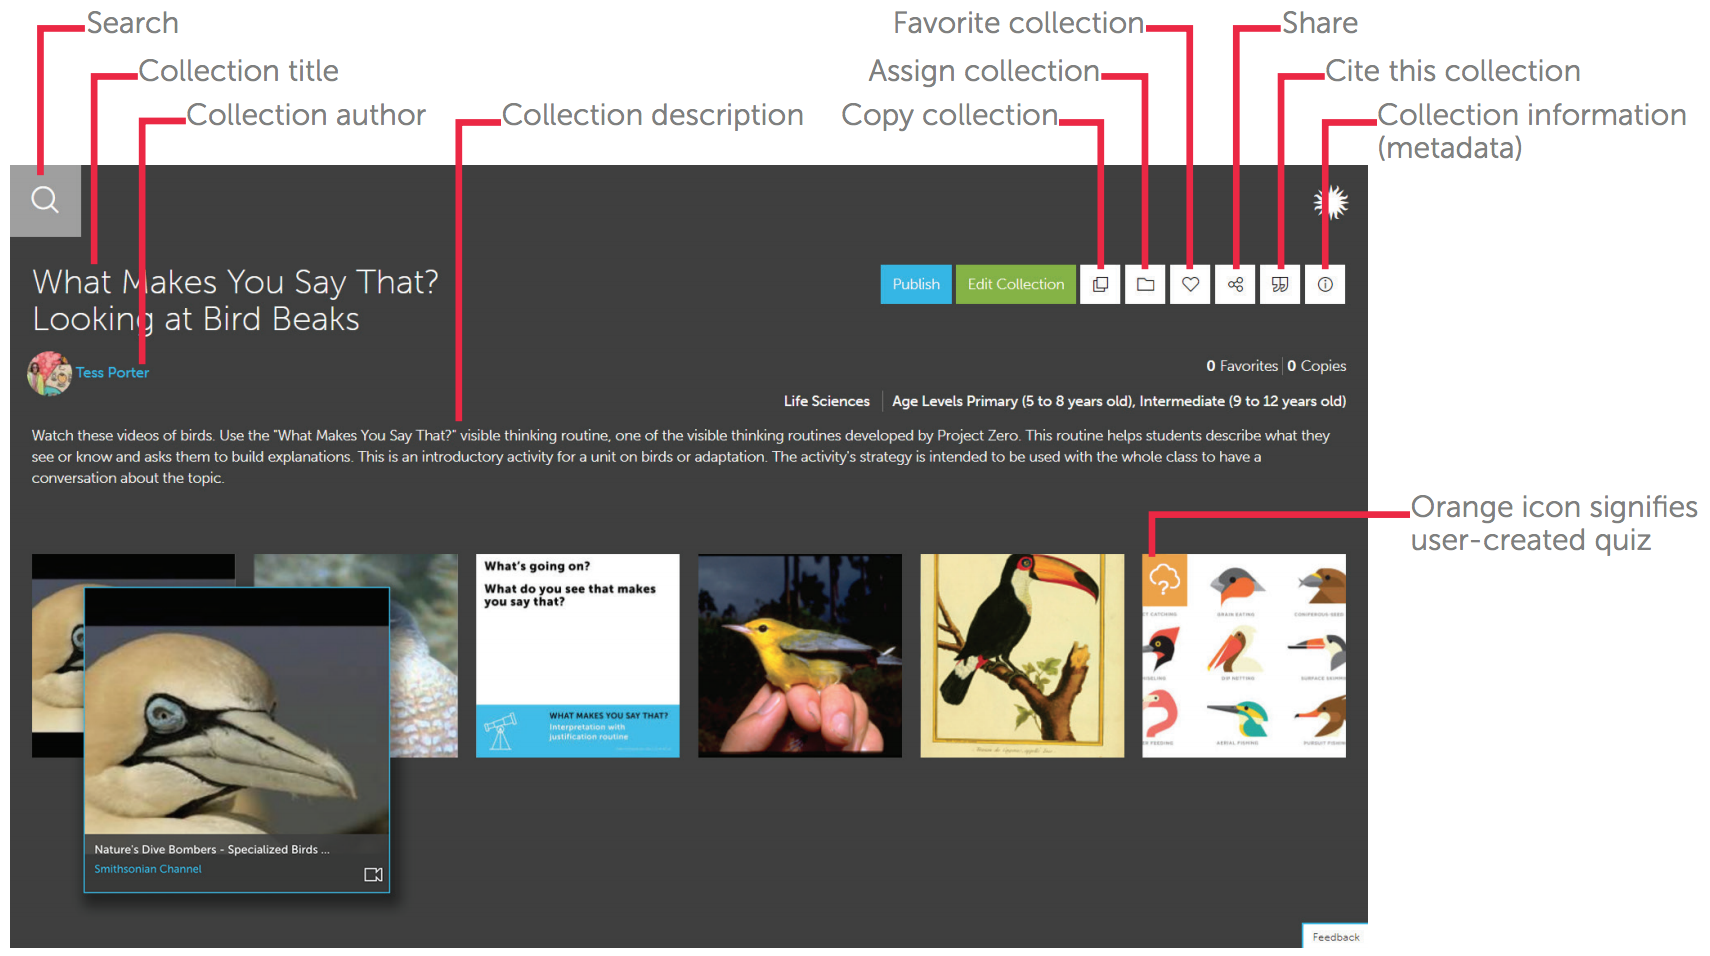 This user-created teaching collection, What Makes You Say That? Looking at Bird Beaks, includes videos, images, a thinking routine, and a quiz. When a user hovers over each resource, he sees its title, source, and media type. Clicking on a resource opens it to show additional information.